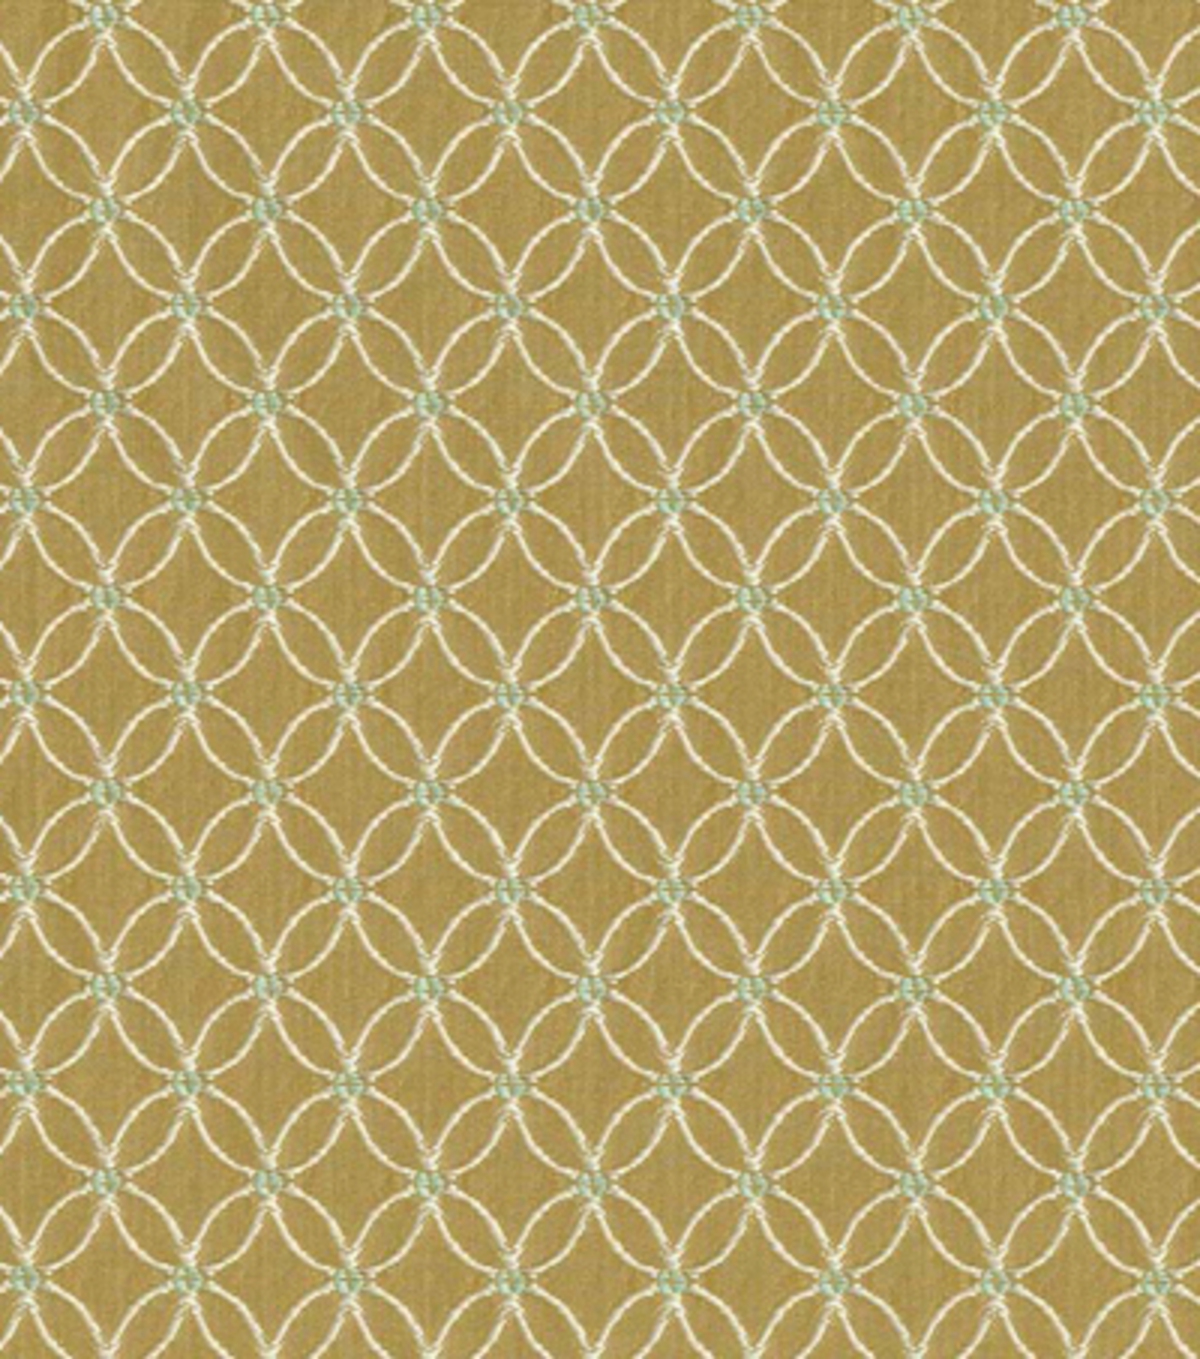 HGTV Home Upholstery Fabric-On The Web/Latte